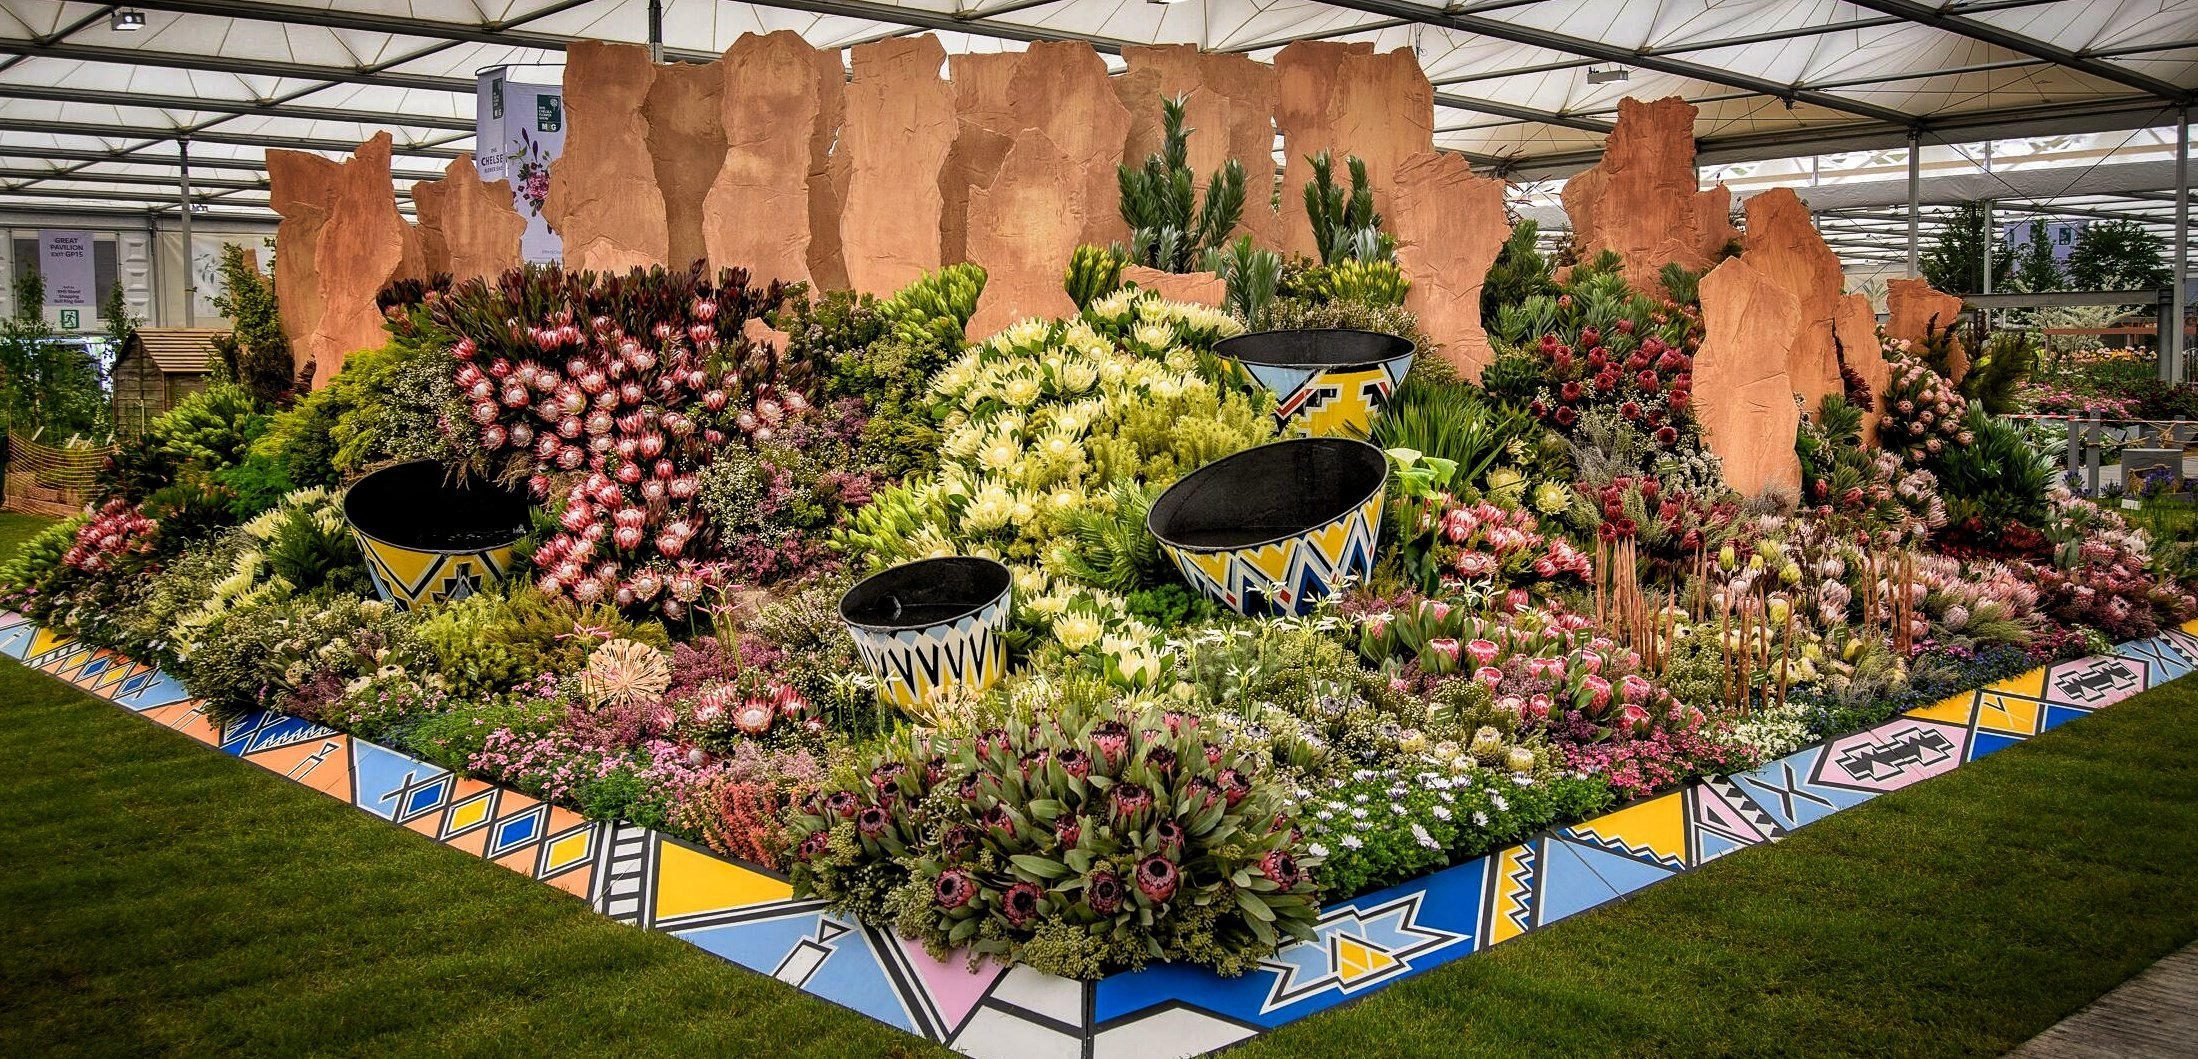 D7EvCKMXsAIMG9g?format=jpg&name=4096x4096 - Kate Middleton shares throwback photo in support of the Chelsea Flower Show